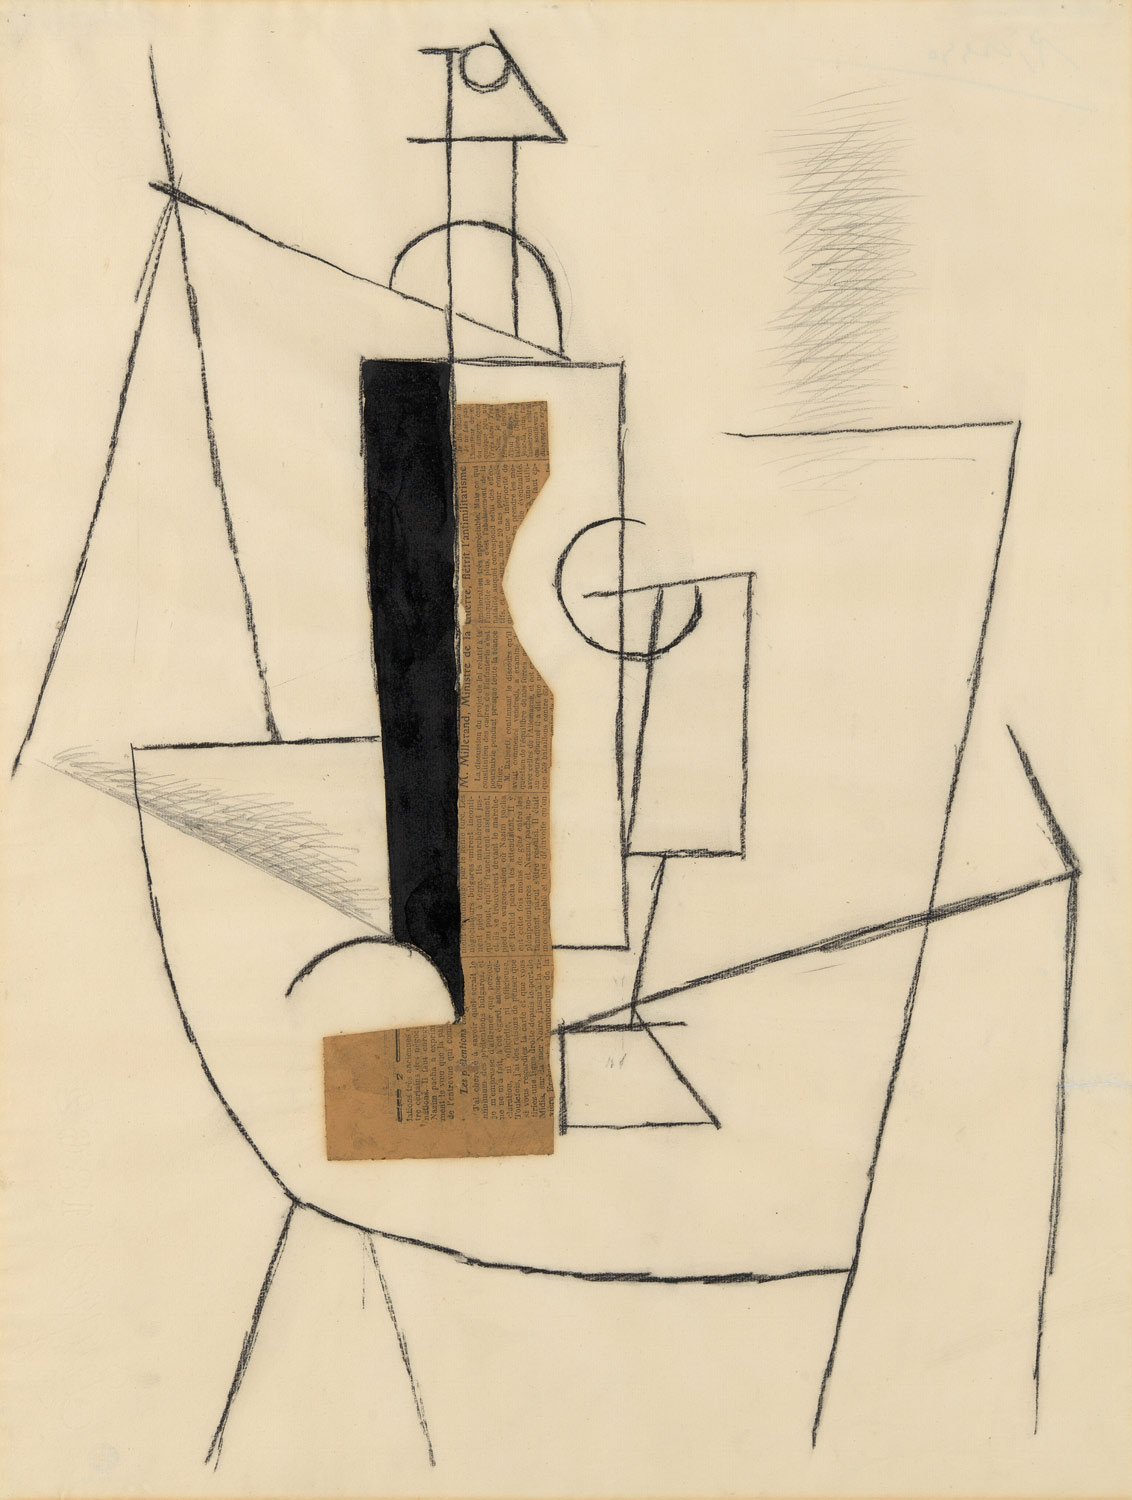 Drawn still life picasso Picasso of Timeline Pablo Glass